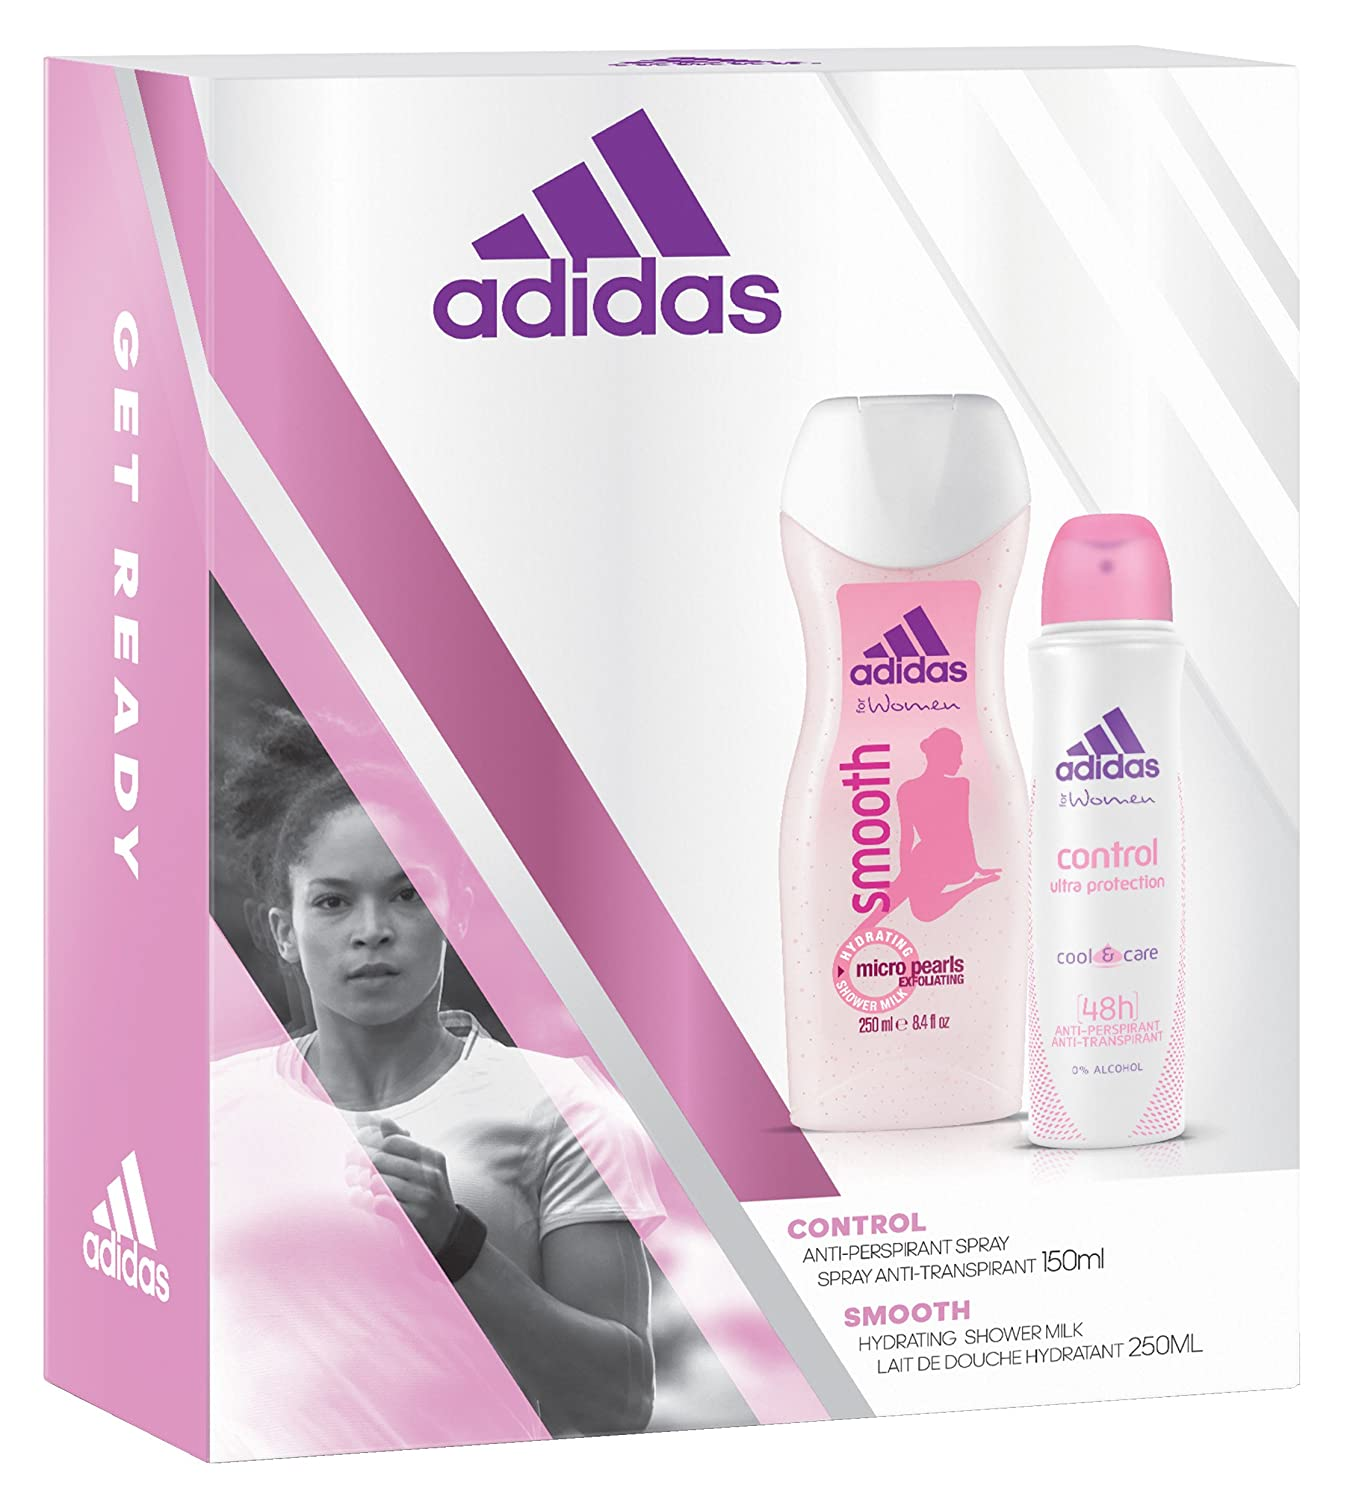 adidas Control APD + Smooth Shower Gel, 400 ml 31992264000